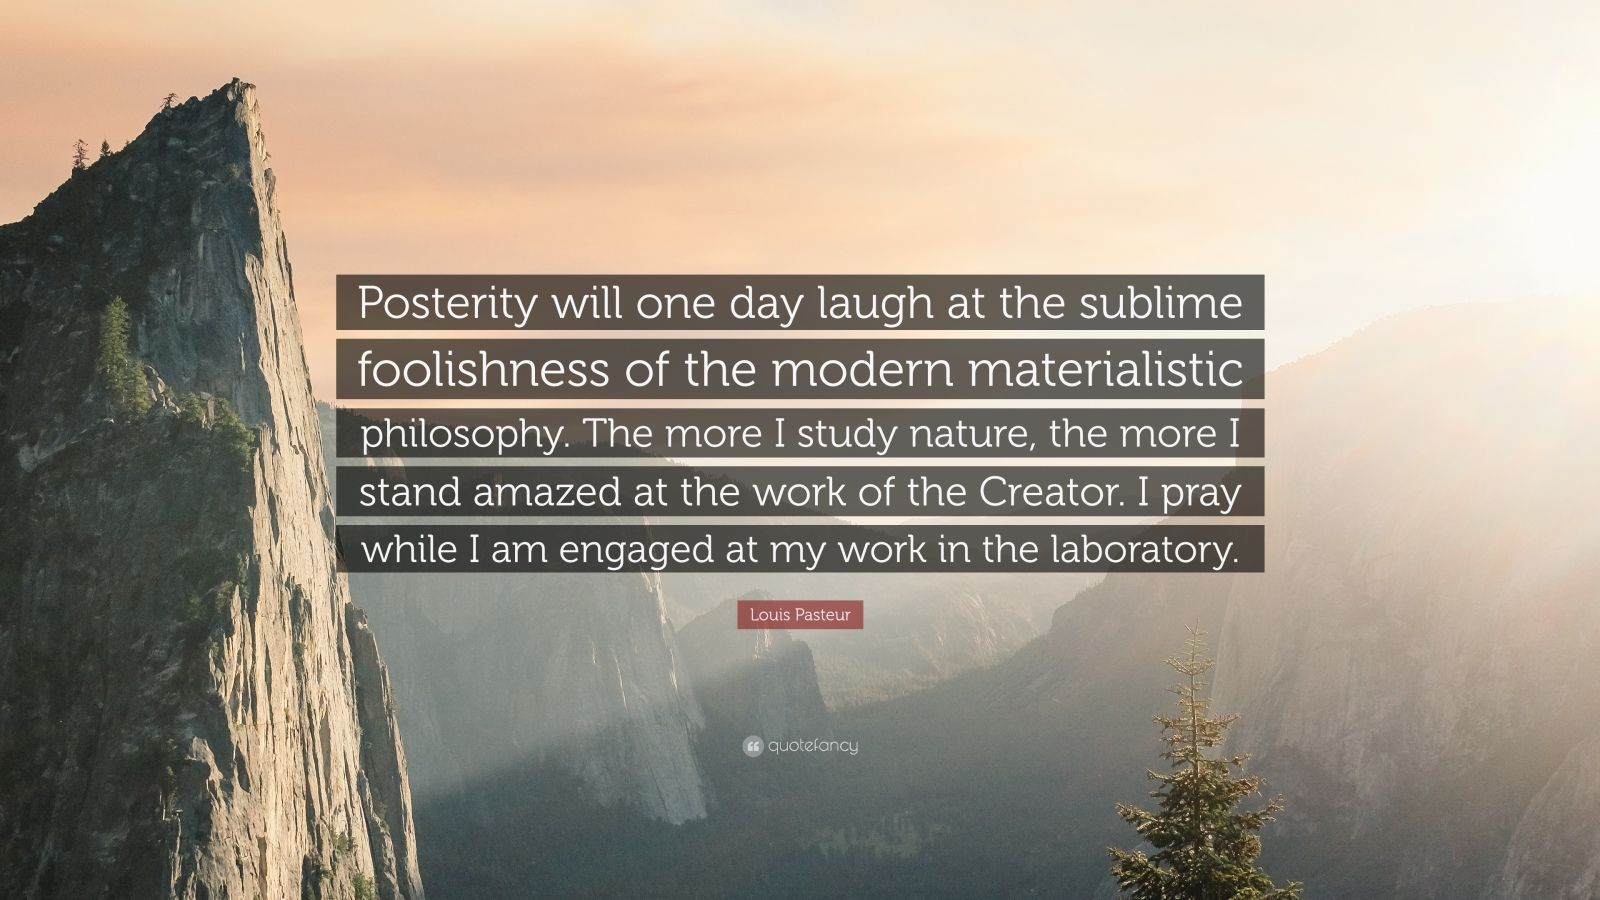 """Louis Pasteur Quote: """"Posterity will one day laugh at the sublime foolishness of the modern materialistic philosophy. The more I study nature, the more I stand amazed at the work of the Creator. I pray while I am engaged at my work in the laboratory."""""""